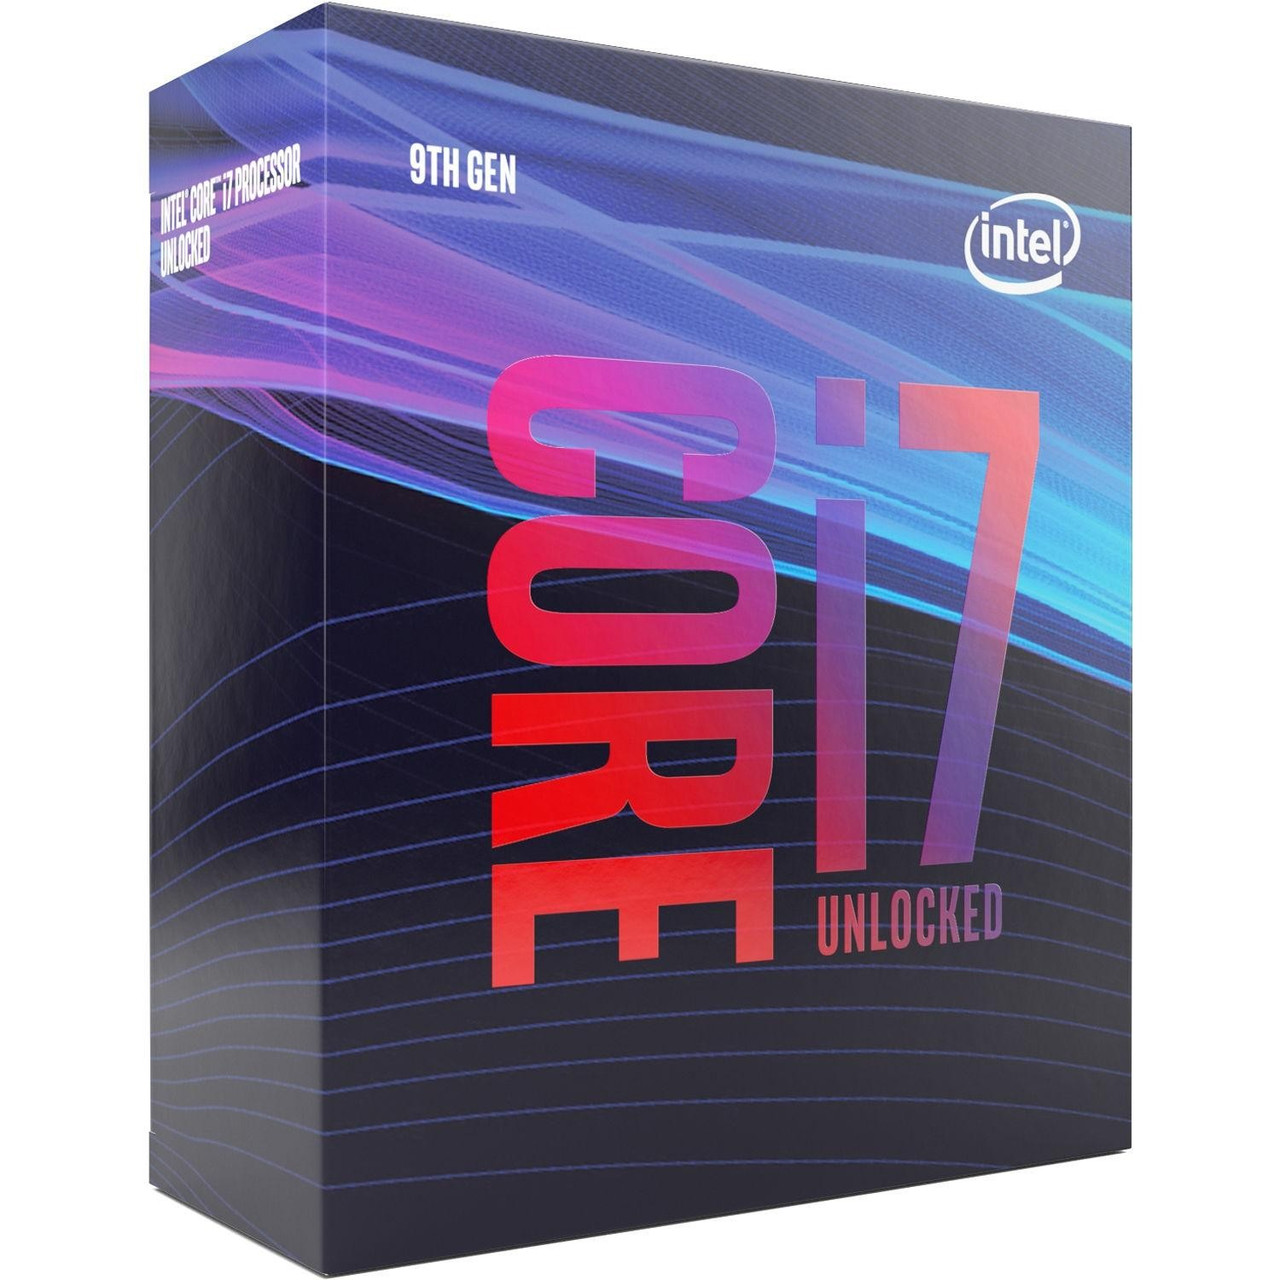 "Процессор Intel Core i7-9700K 3,60 GHz (BX80684I79700K) Socket 1151-V2 ""Over-Stock"" Б/У"